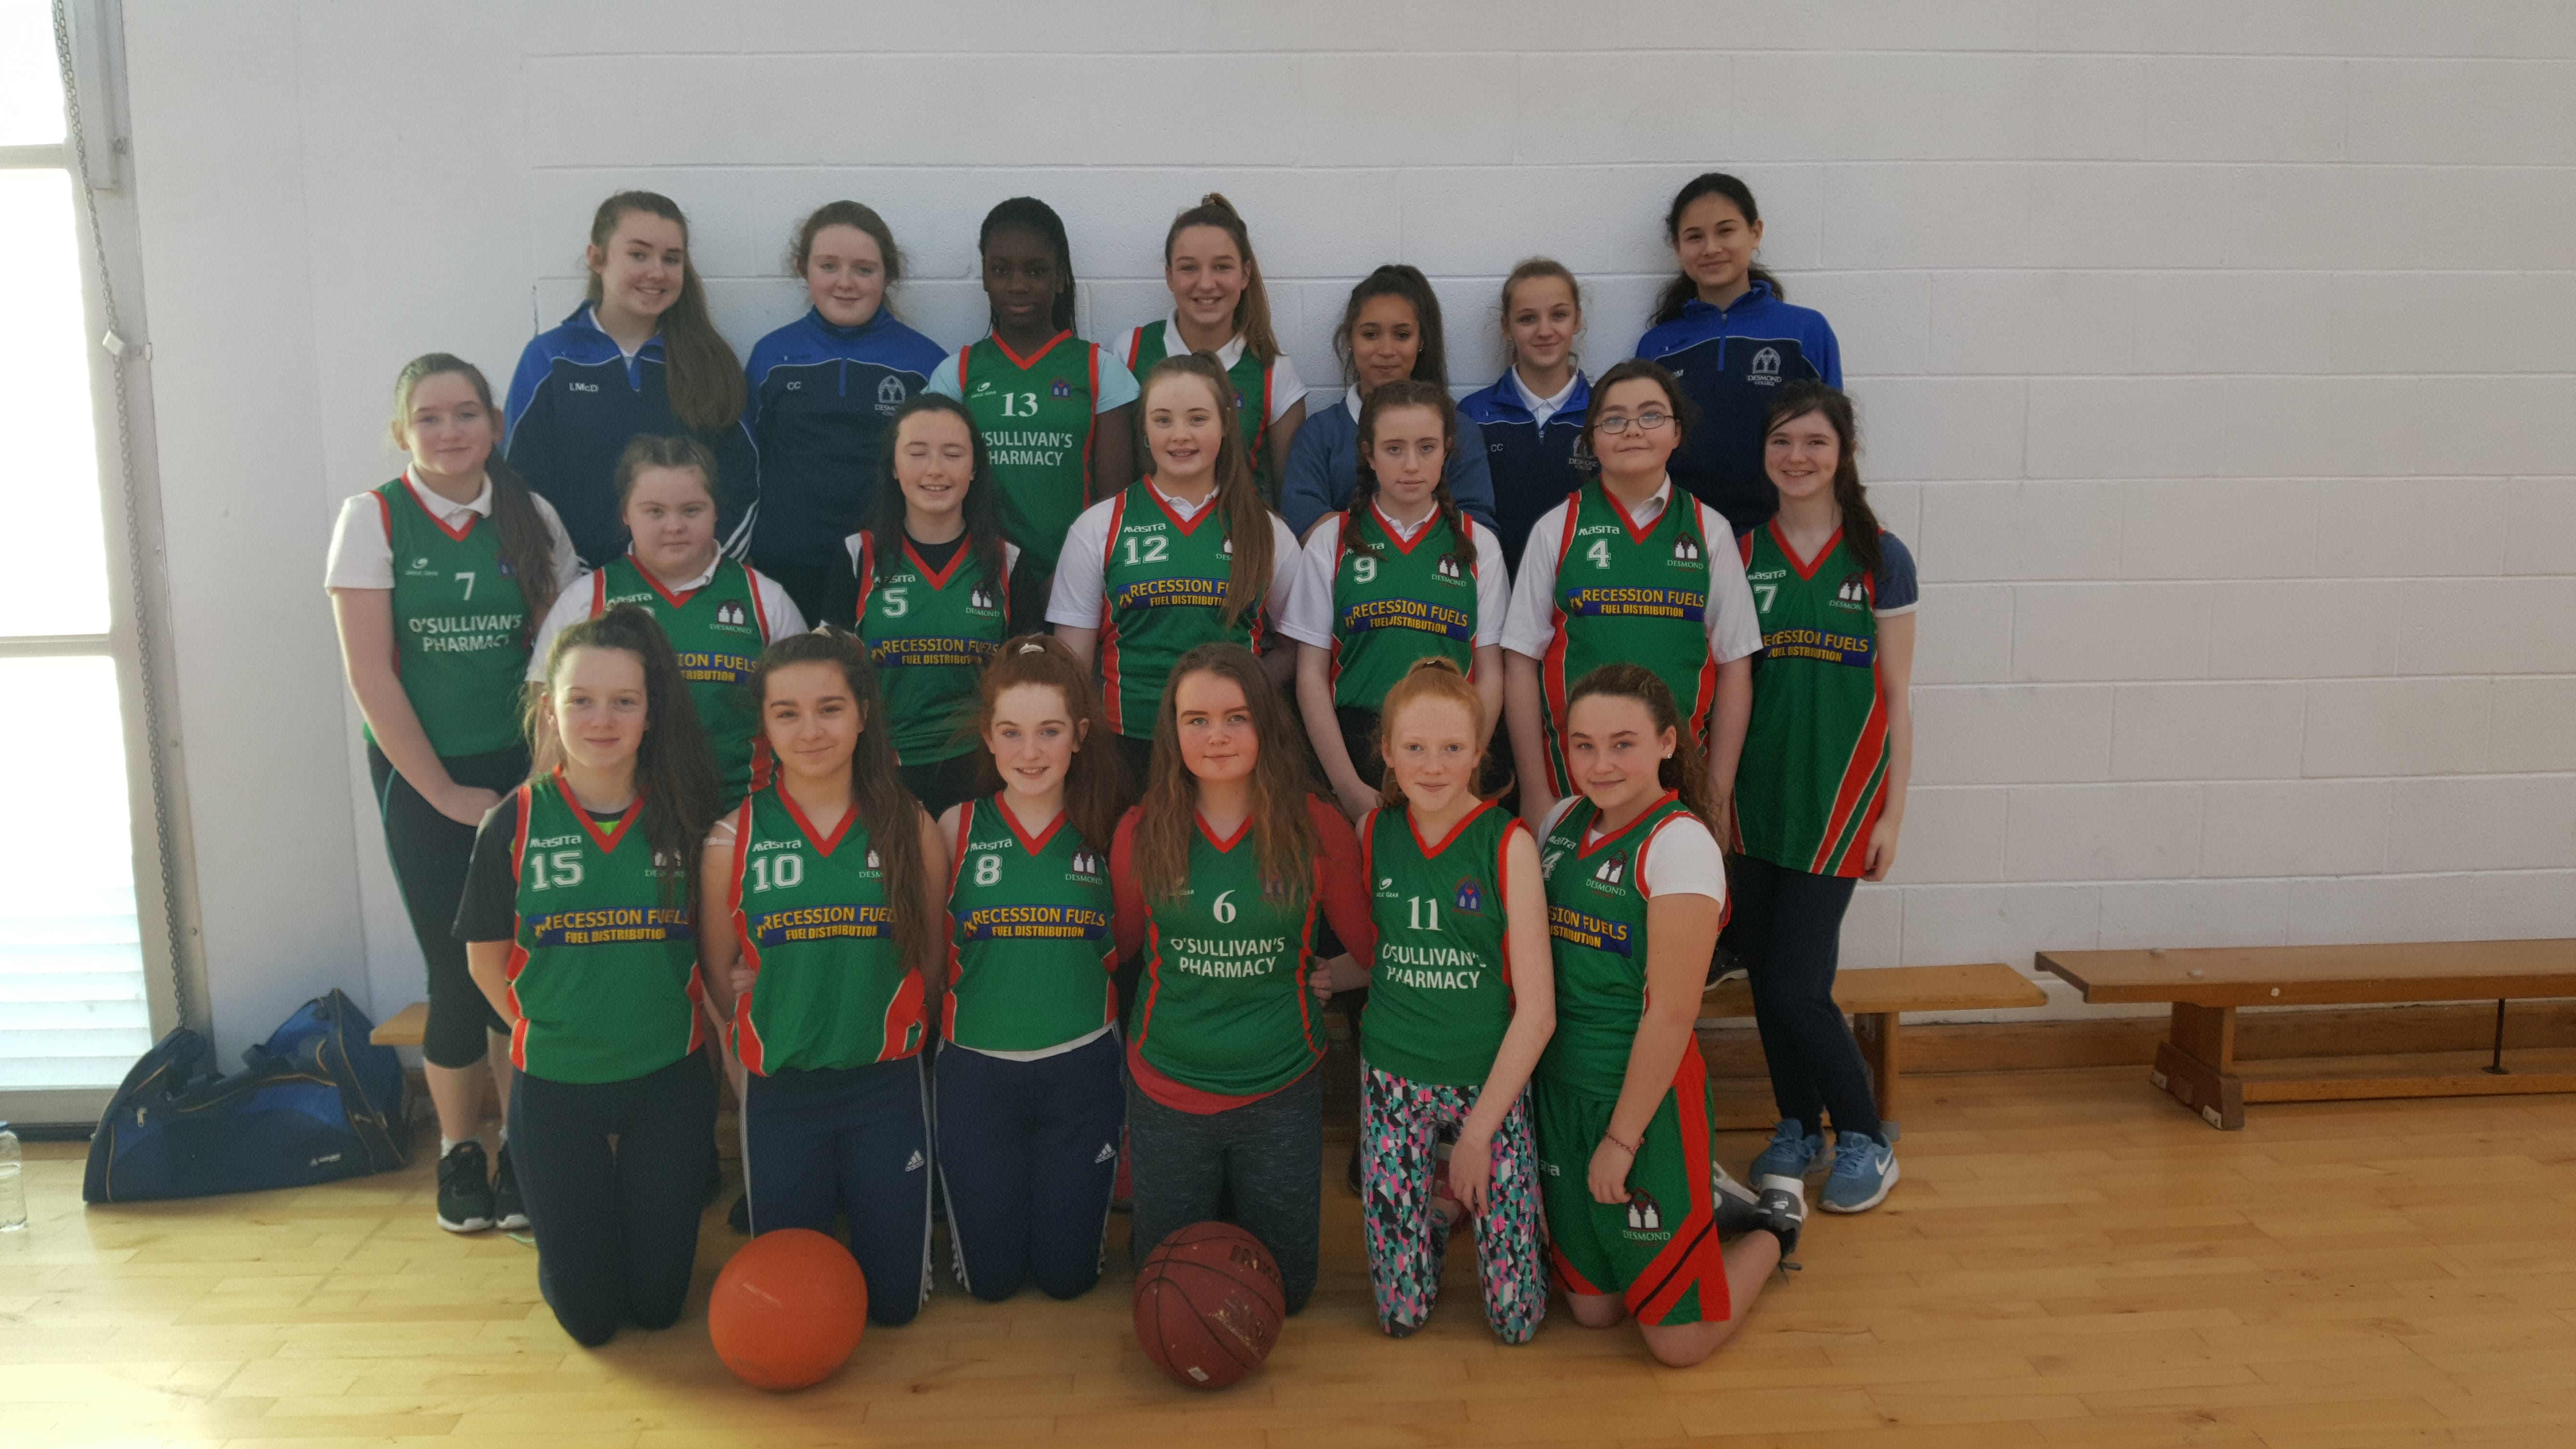 Jan 2018: Desmond College Ladies Basketball Team